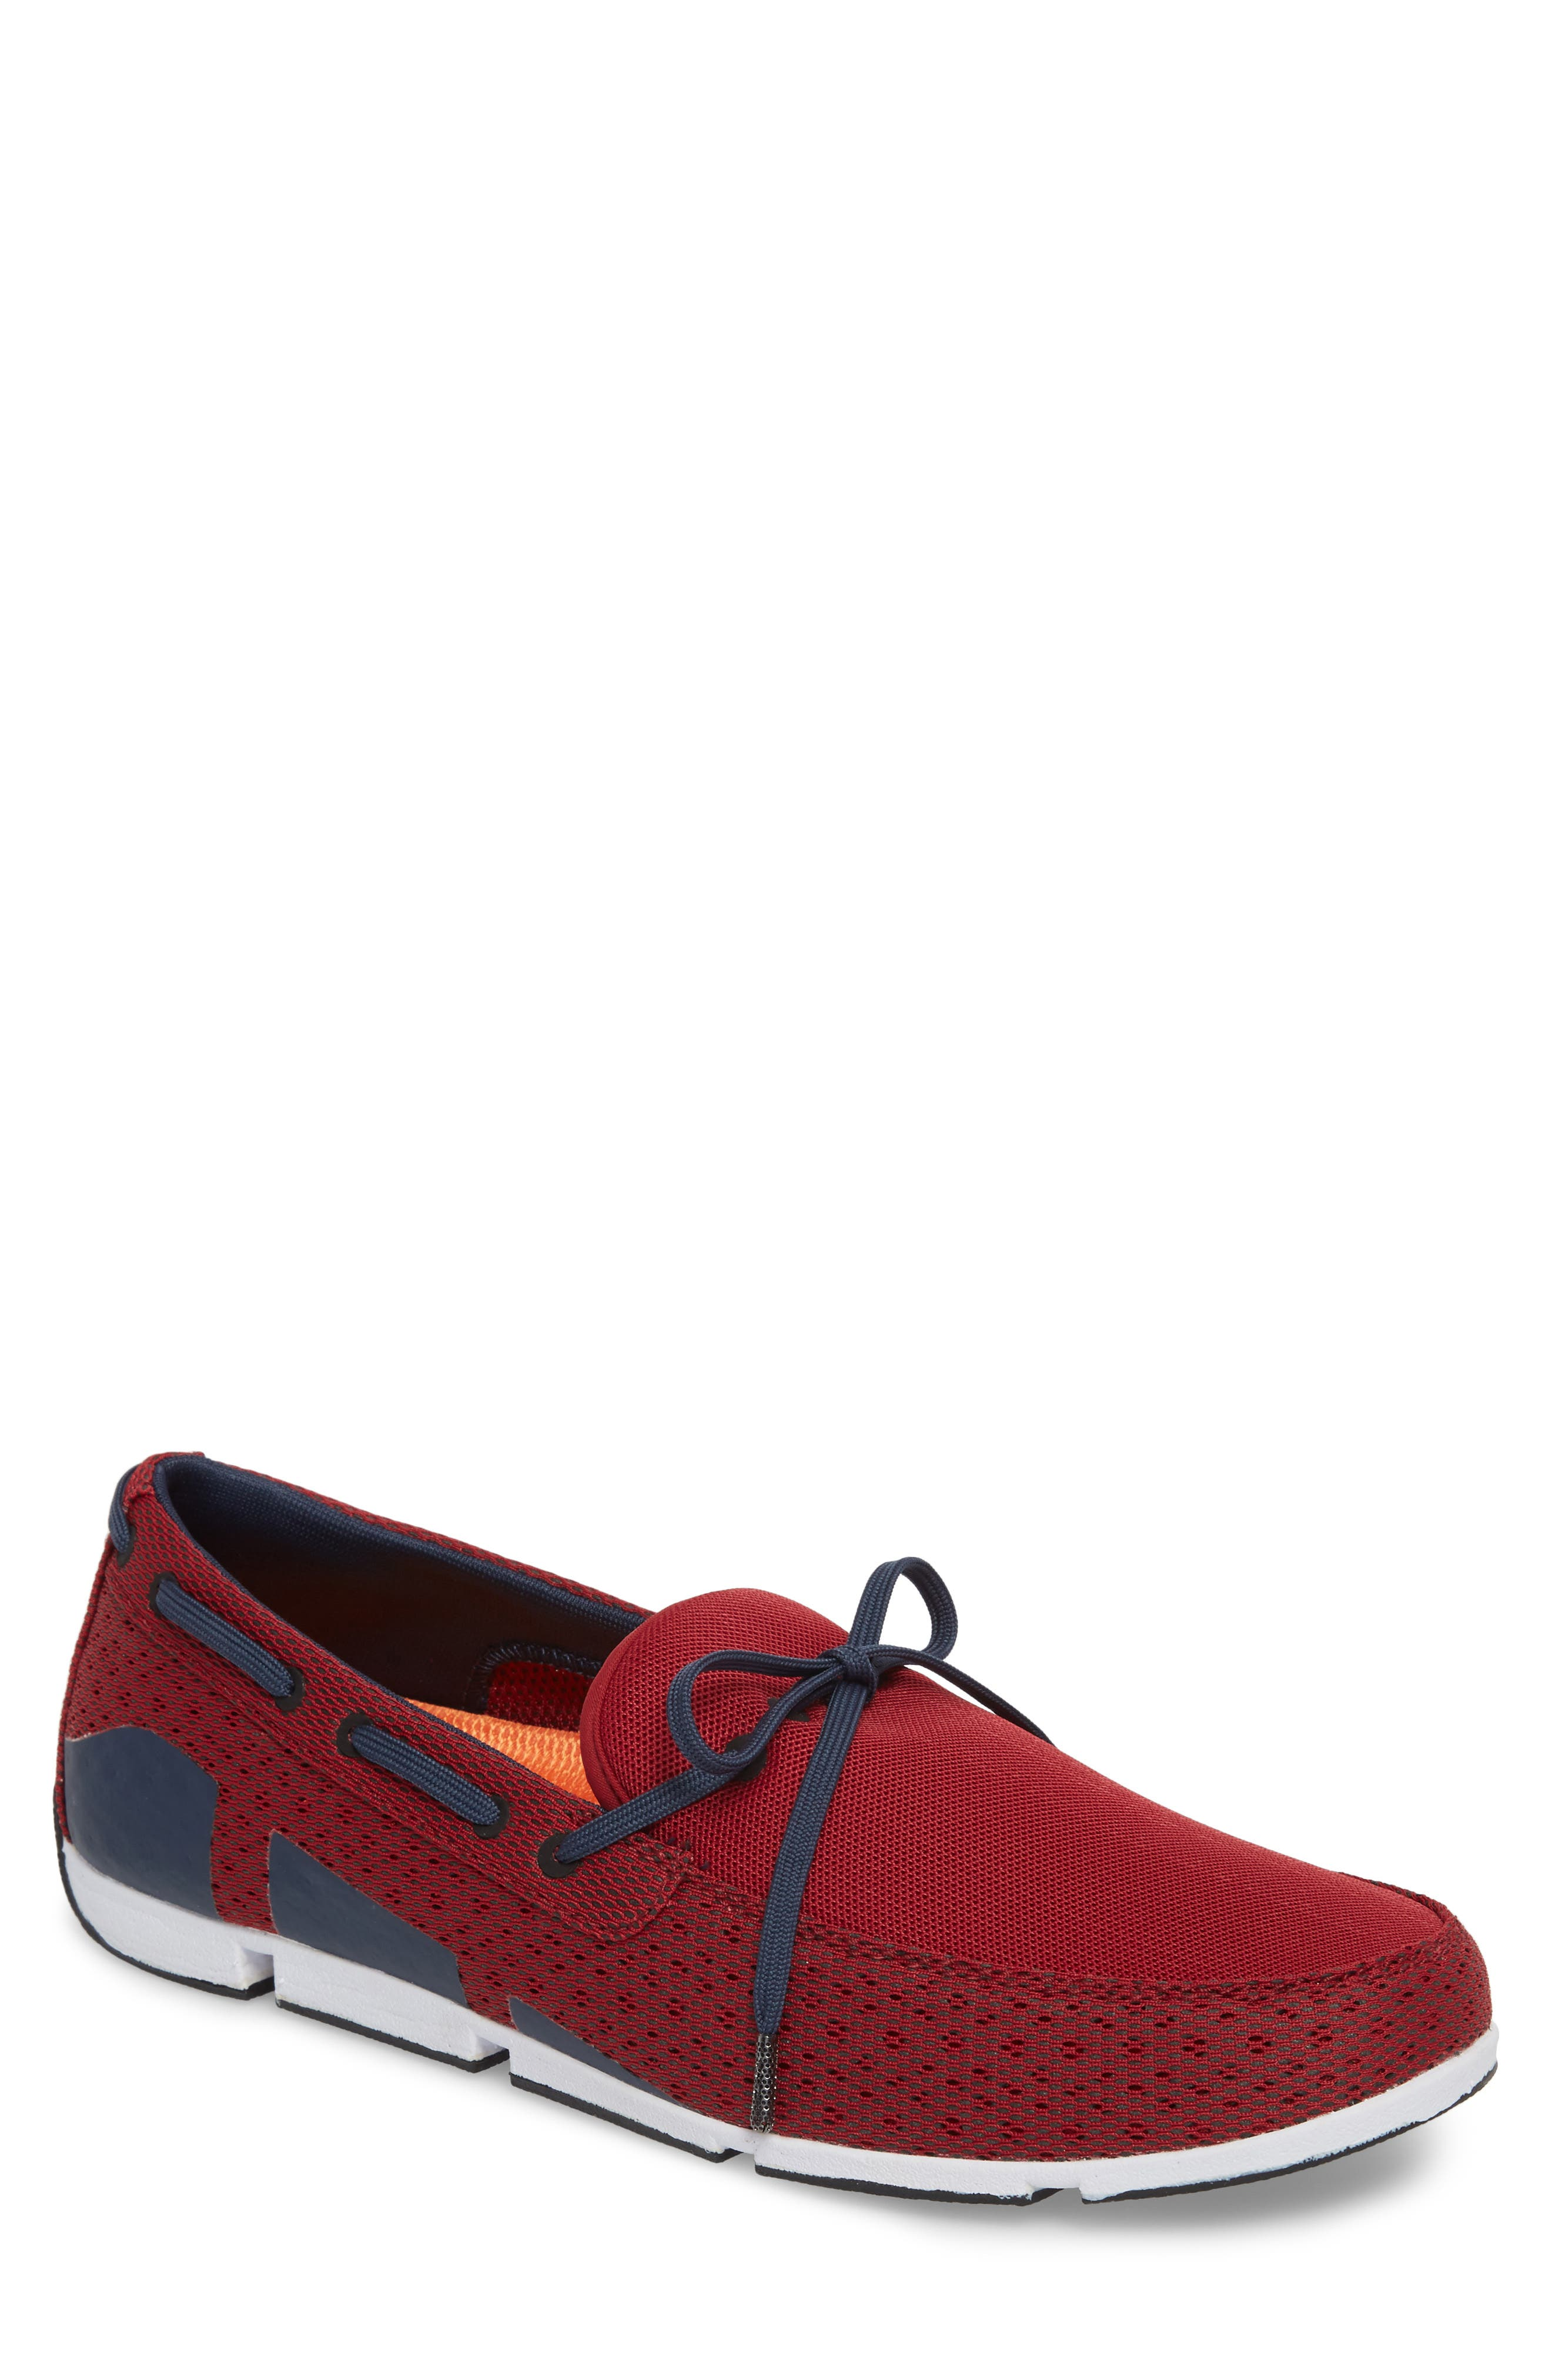 Alternate Image 1 Selected - Swims Breeze Loafer (Men)